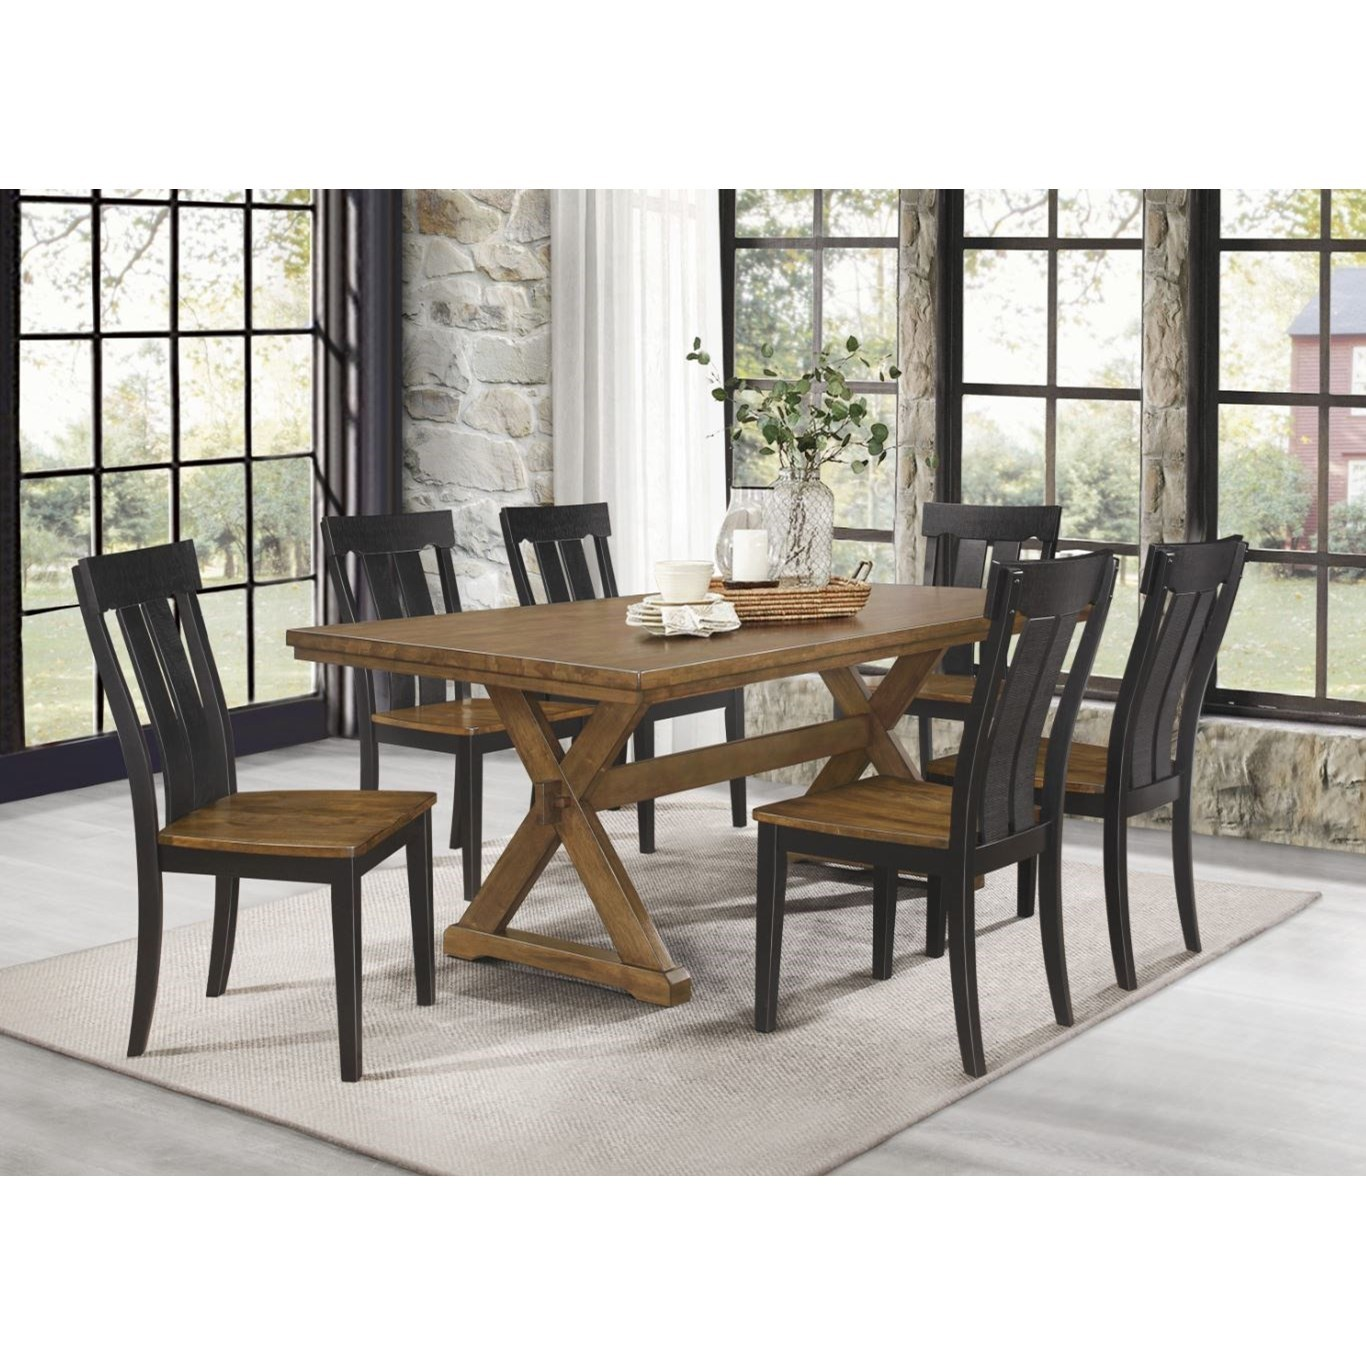 Ormond 7-Piece Table and Chair Set by Homelegance at Beck's Furniture